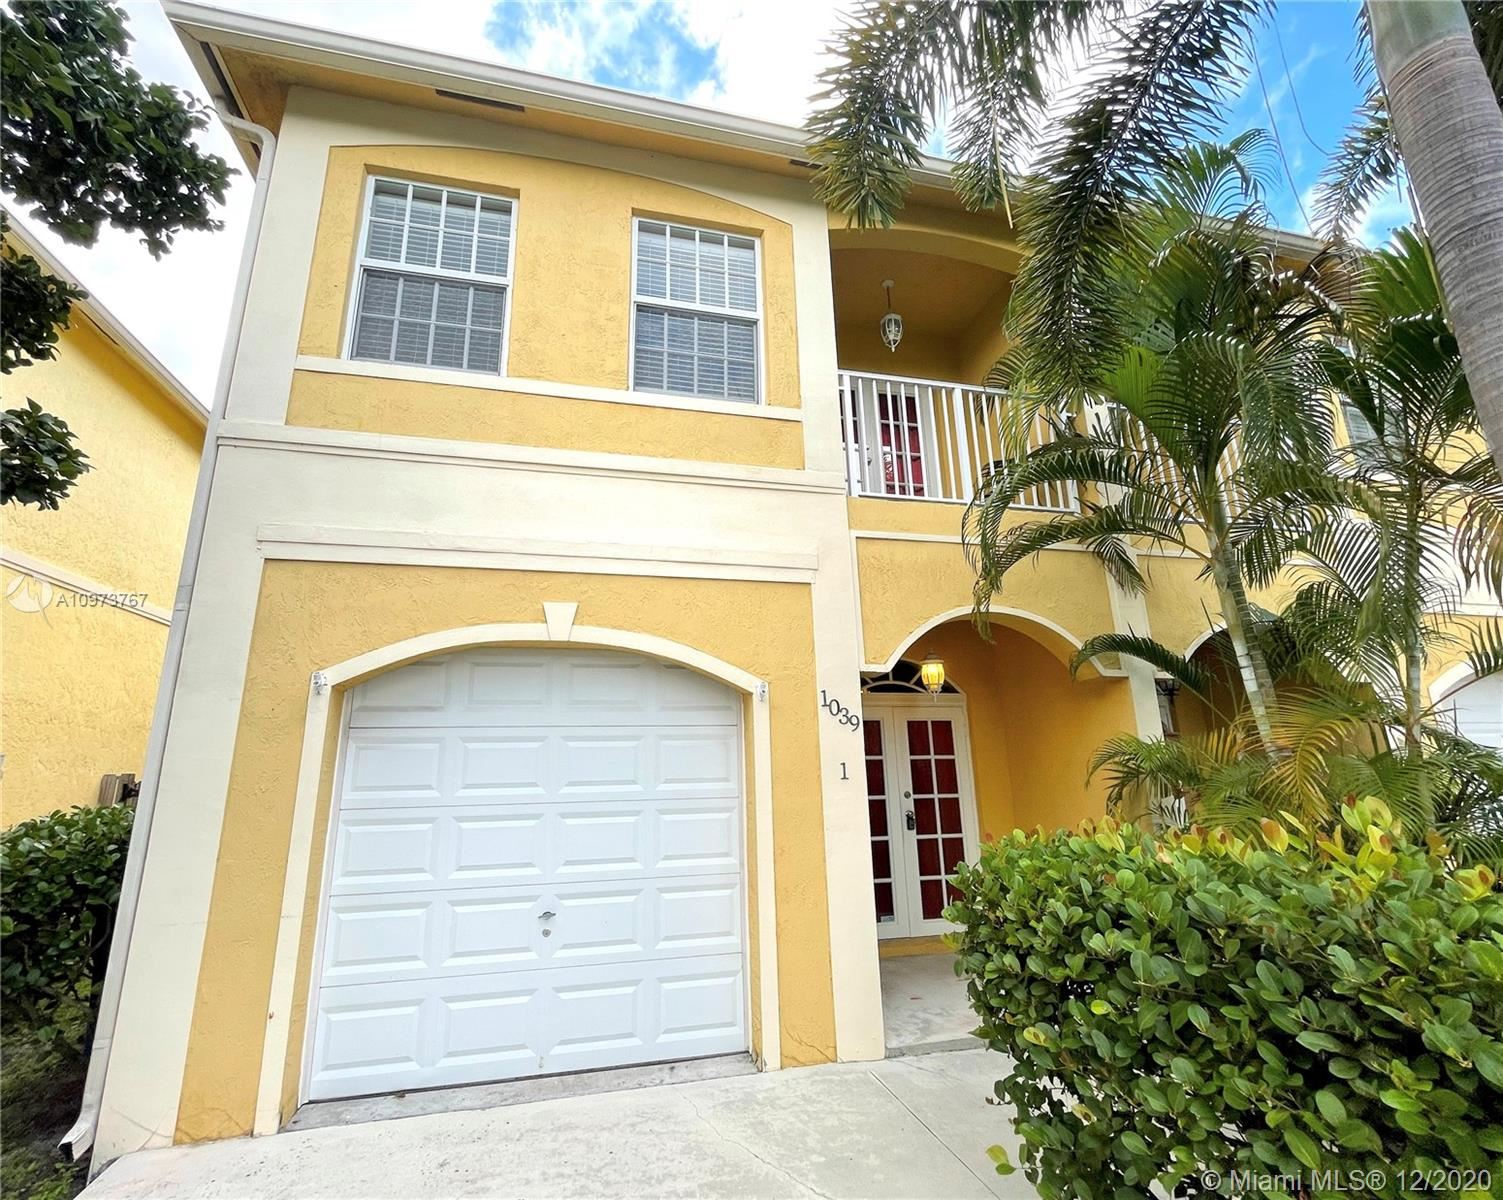 1039 NW 7th Ter #1, Fort Lauderdale, FL 33311 - #: A10973767